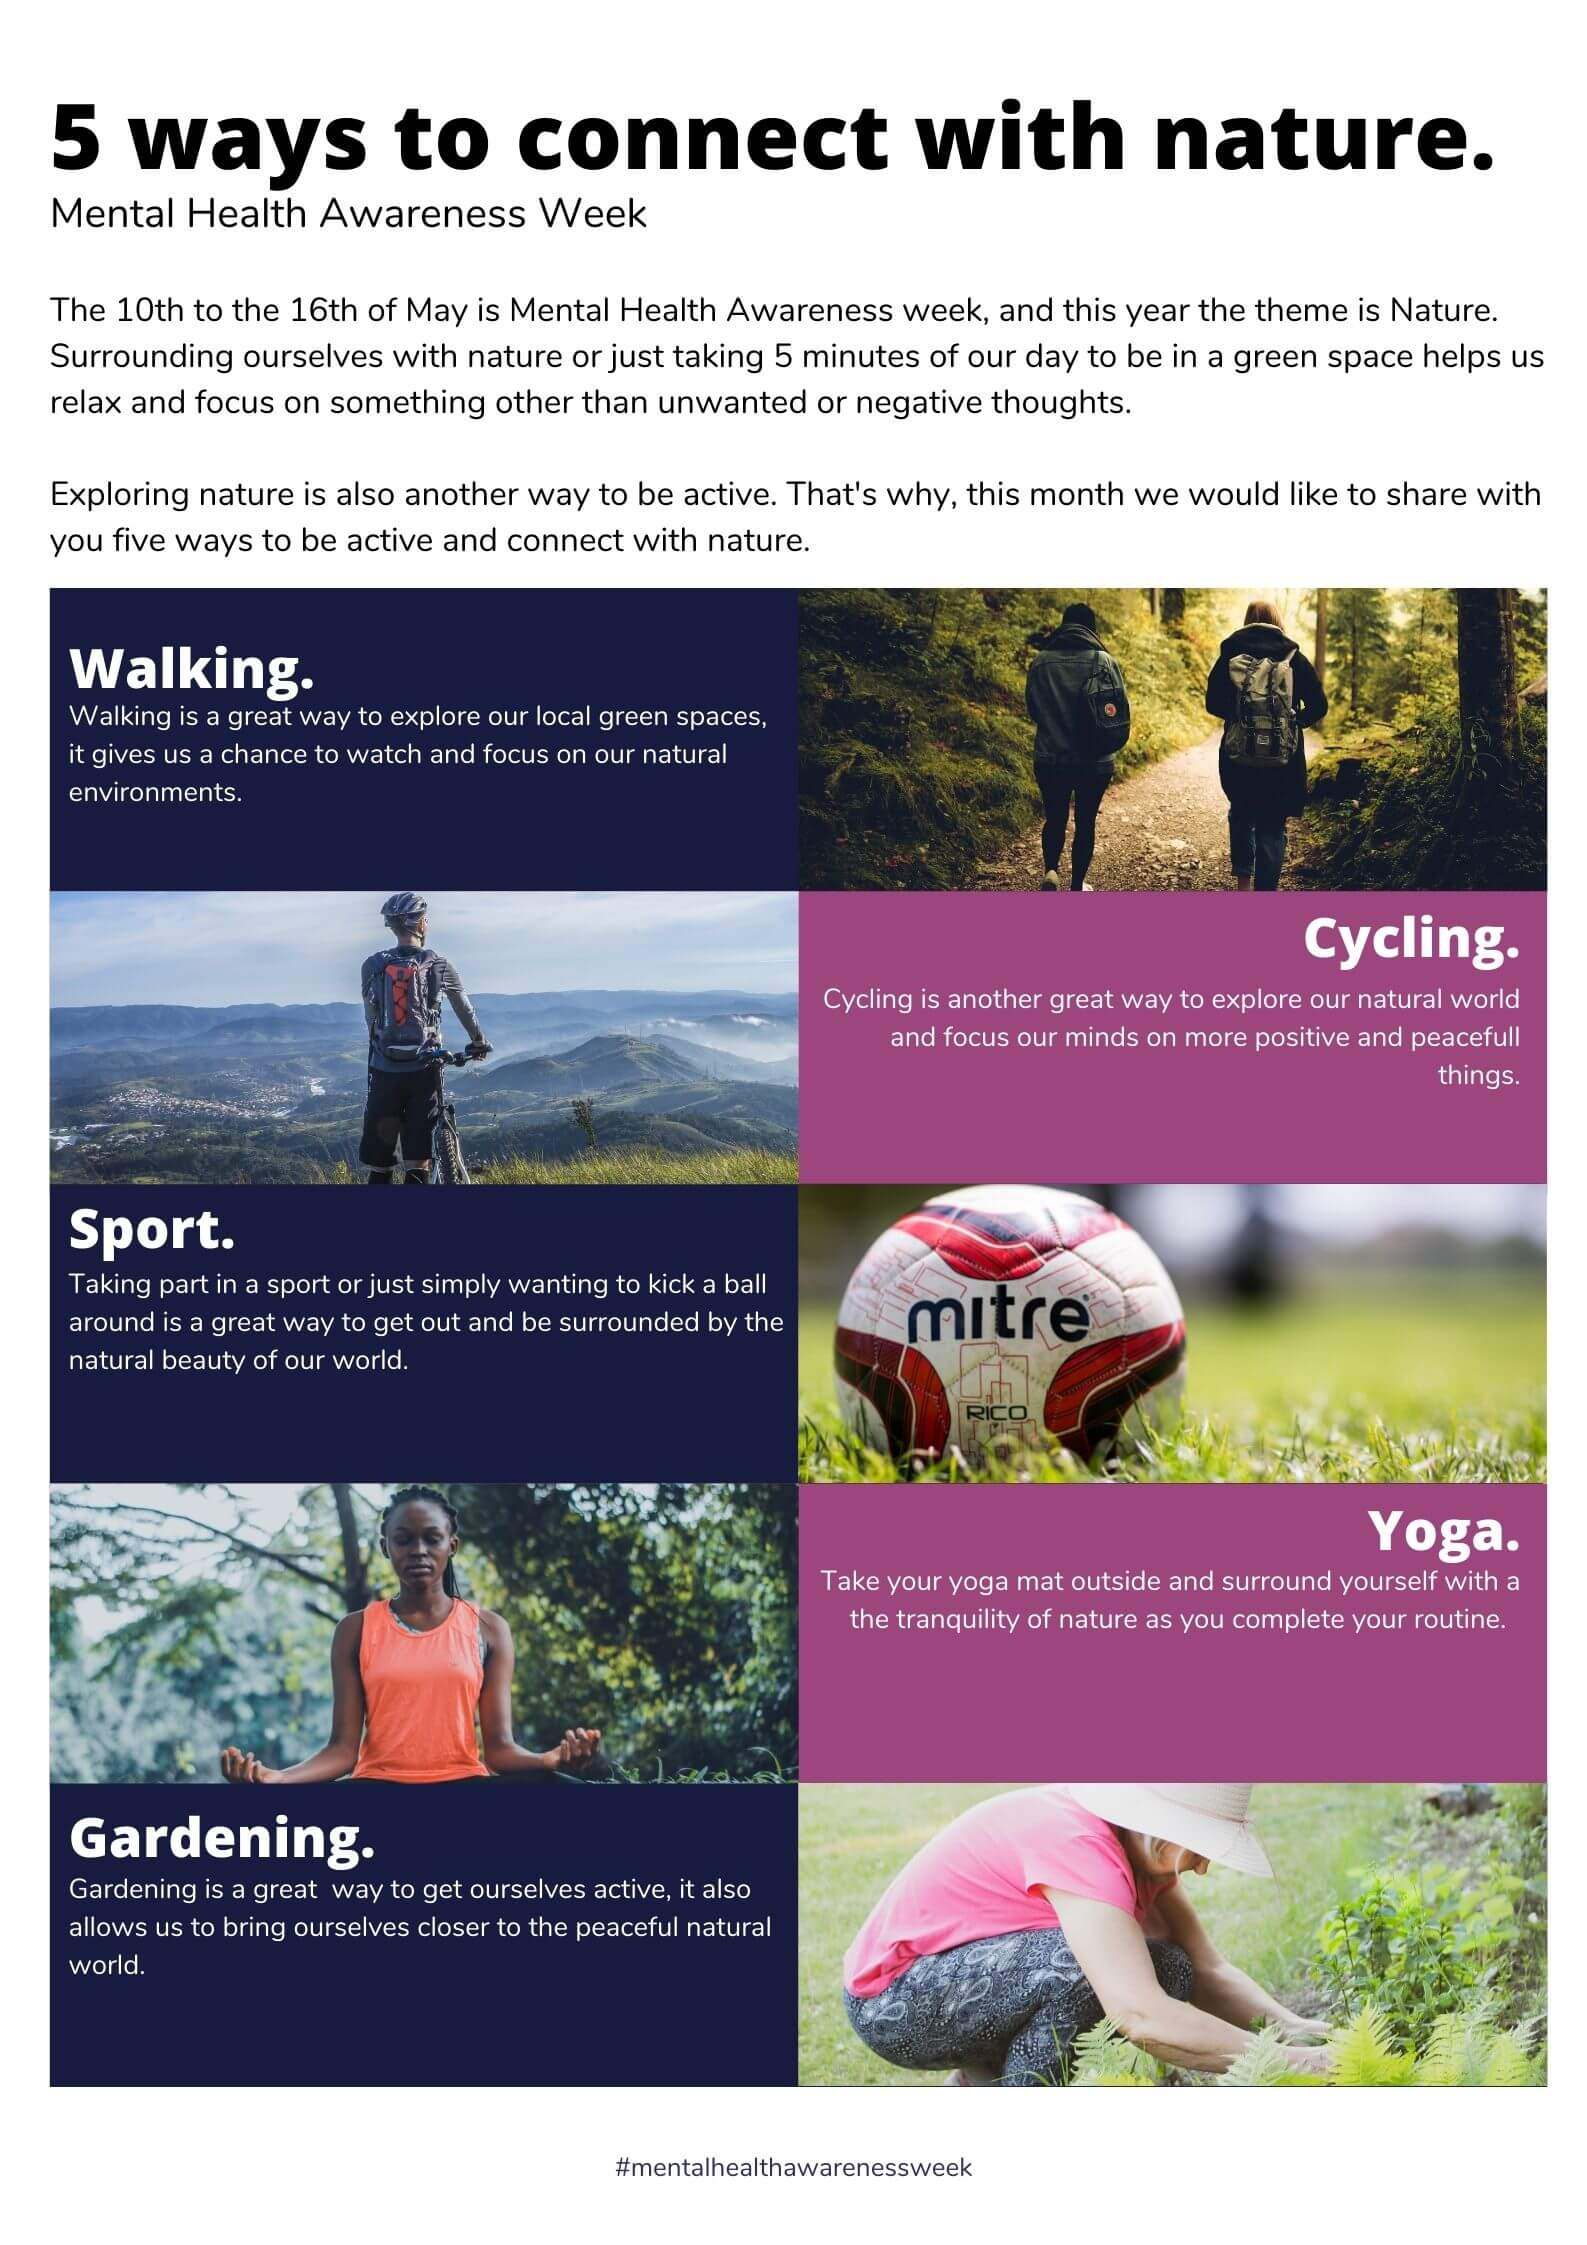 5 ways to be active and connect with nature